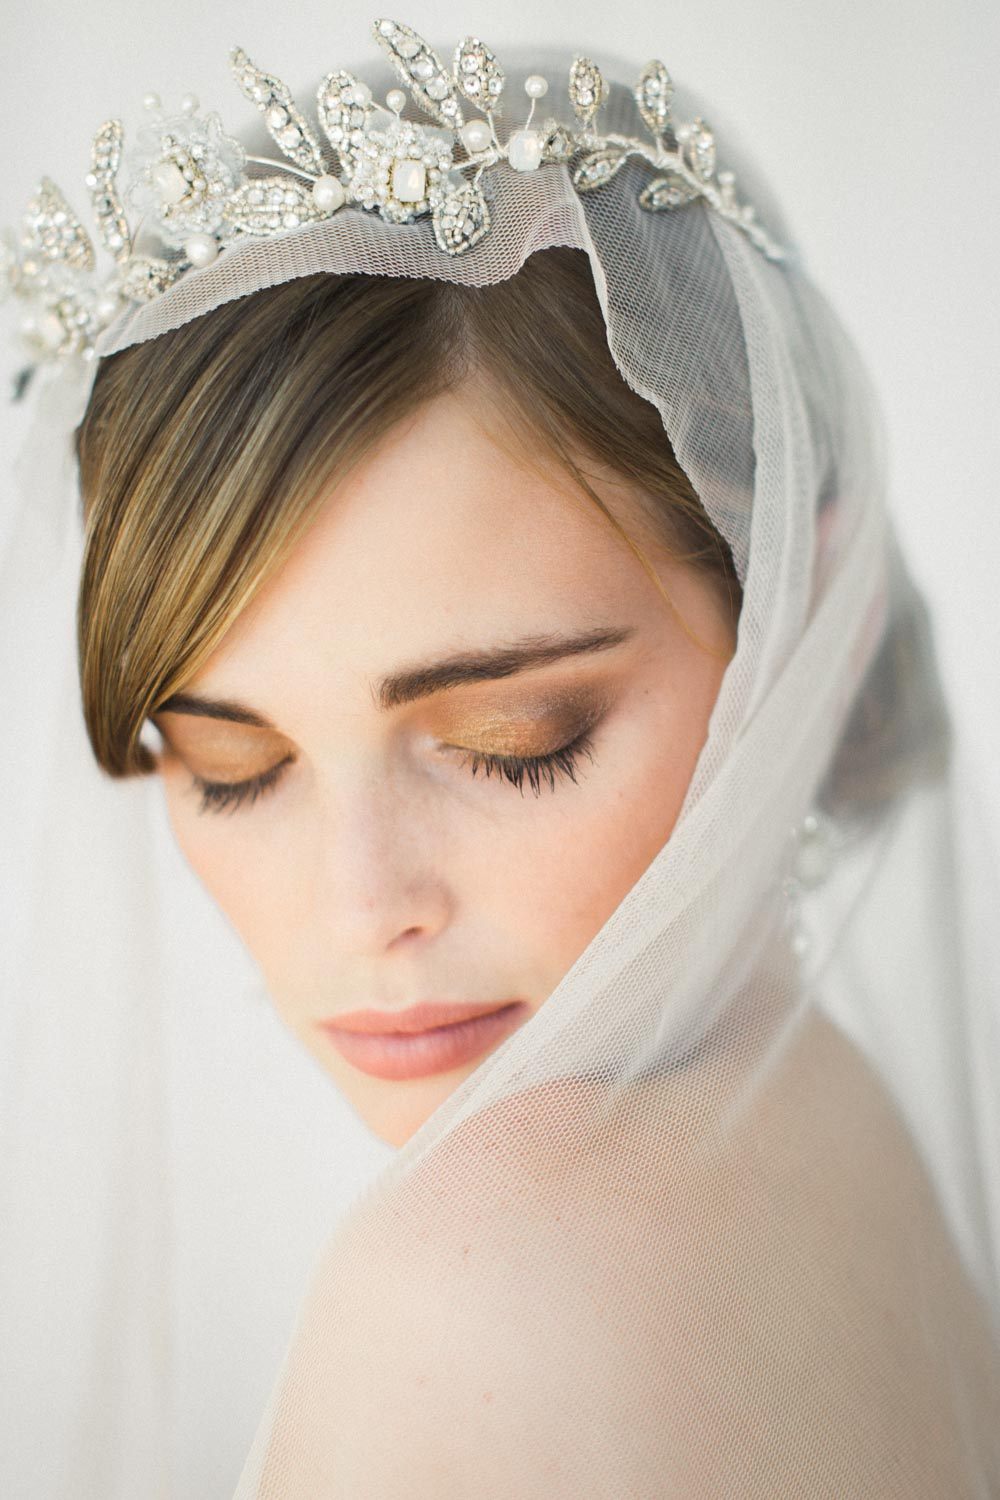 Edera Jewelry Blog: How to Choose a Tiara for Your Wedding